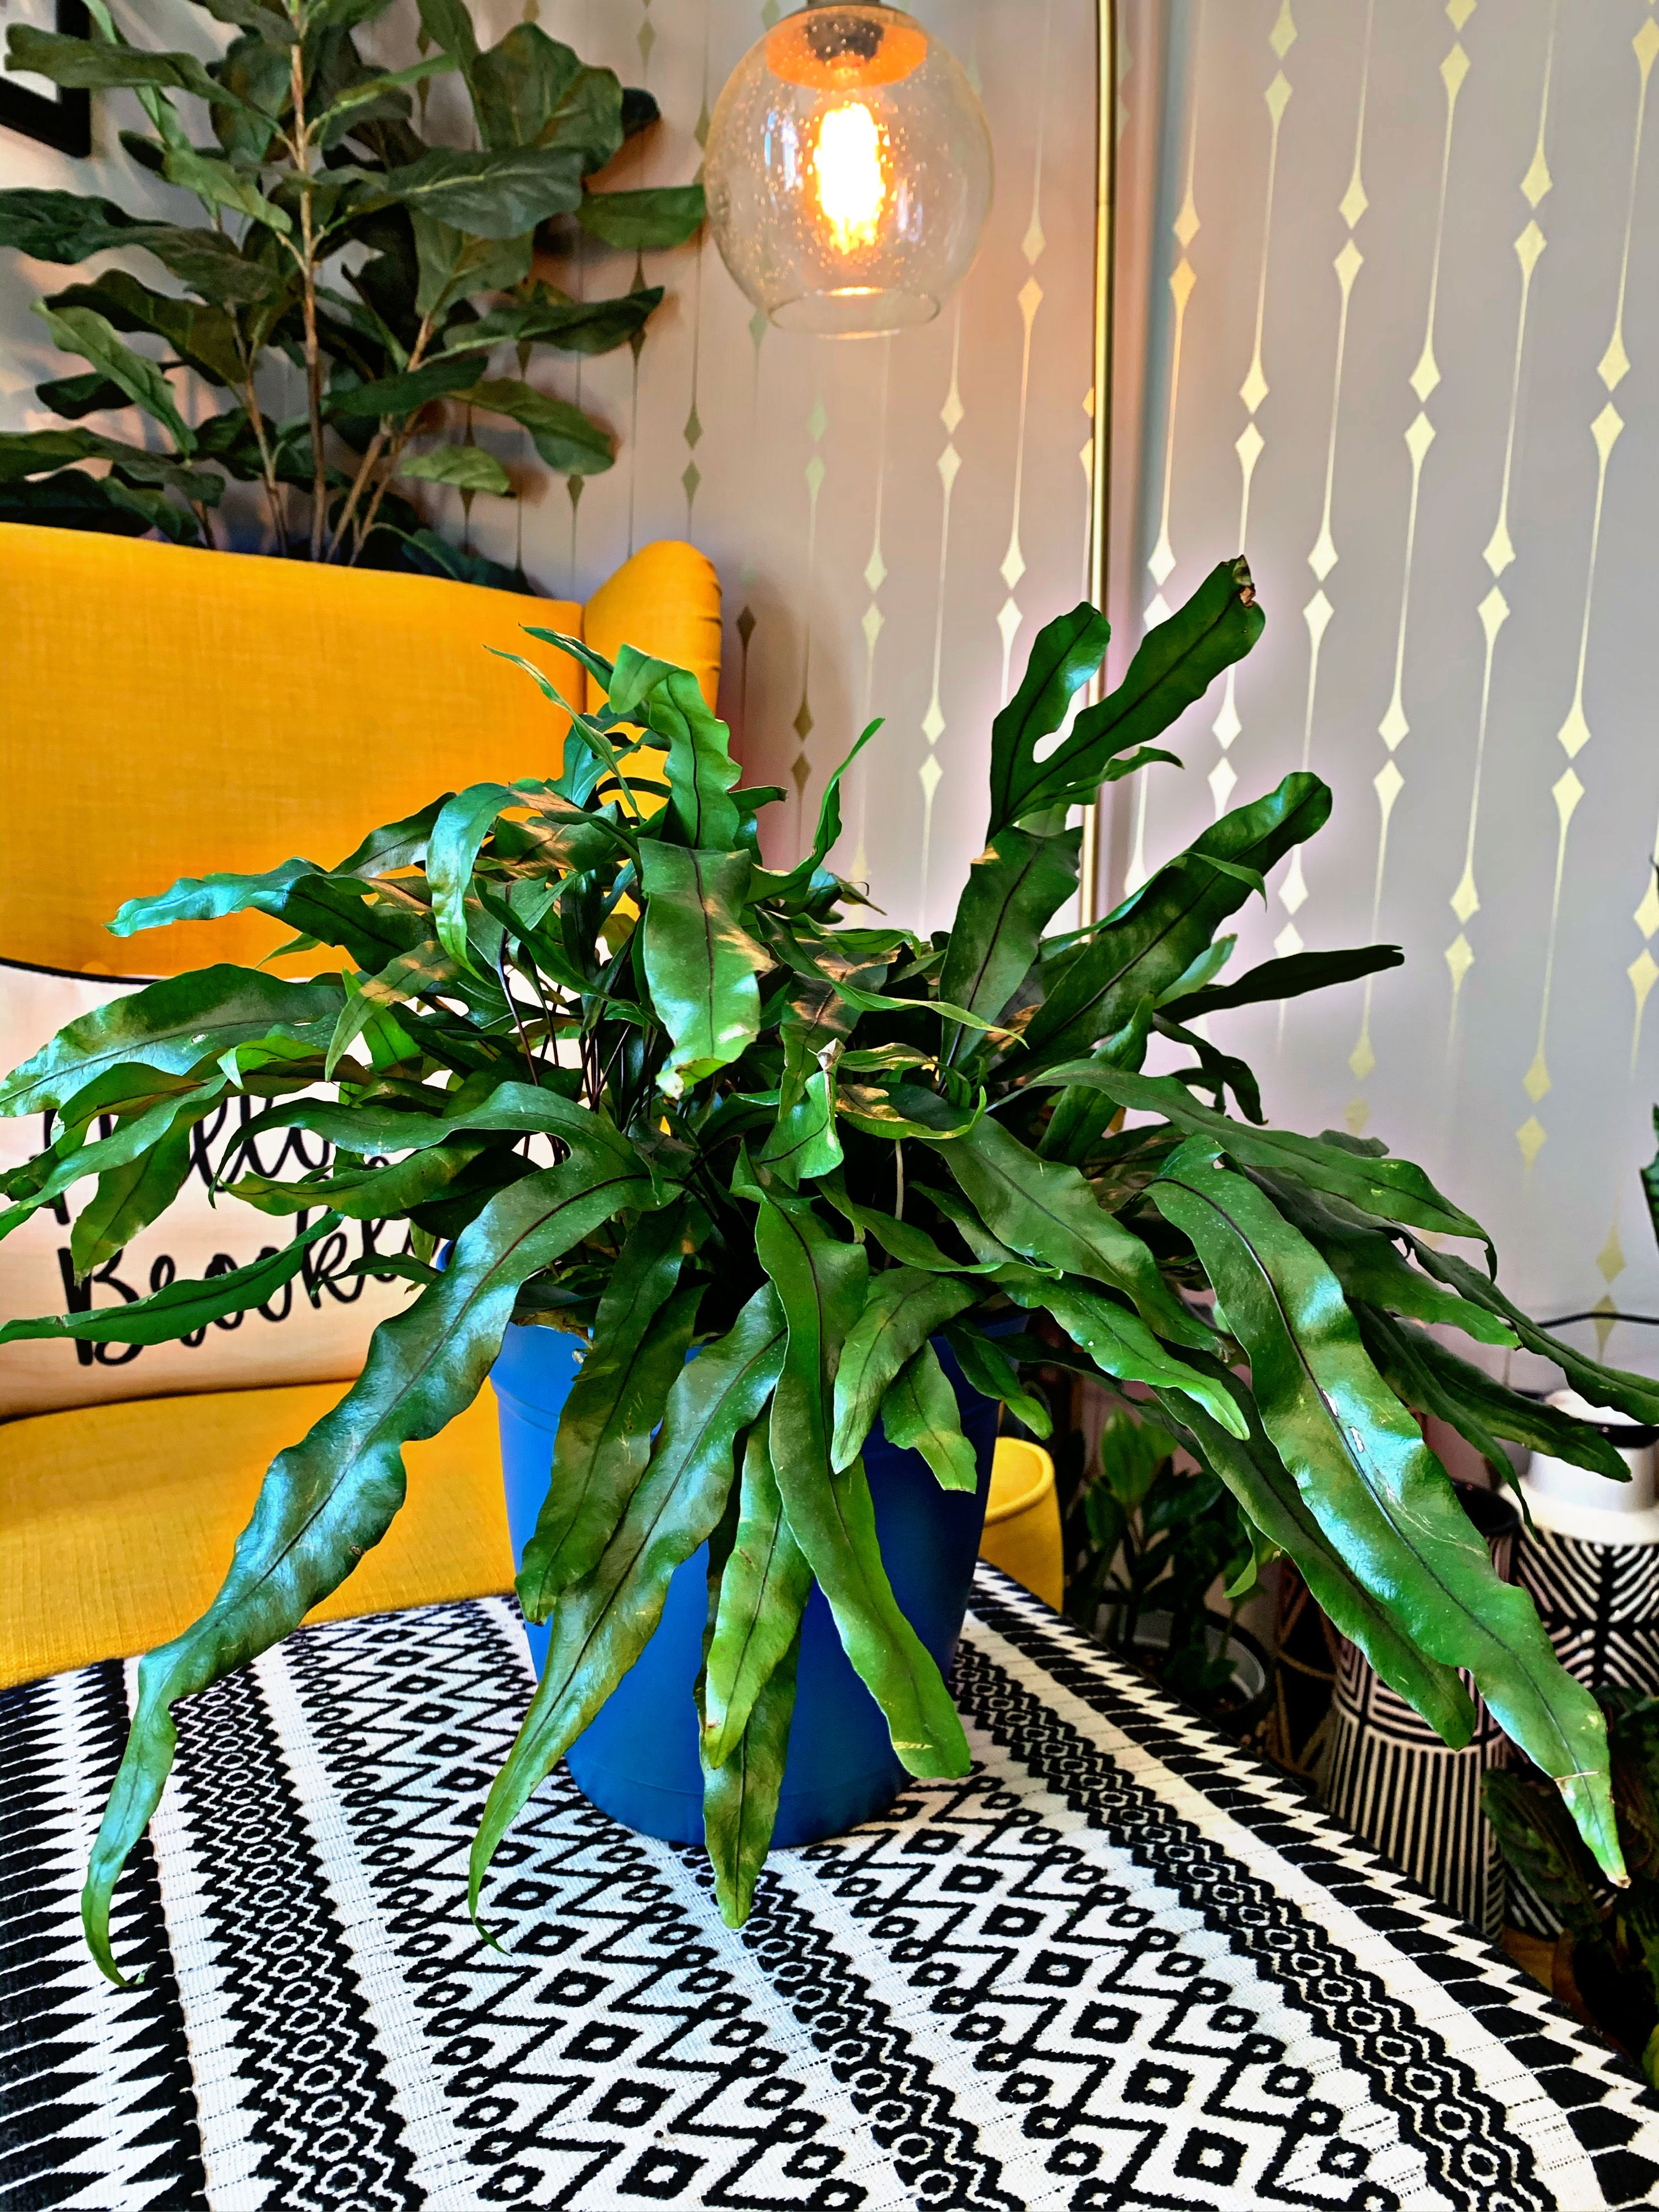 Your Complete Guide to Caring For (and Propagating) a Kangaroo Paw Fern